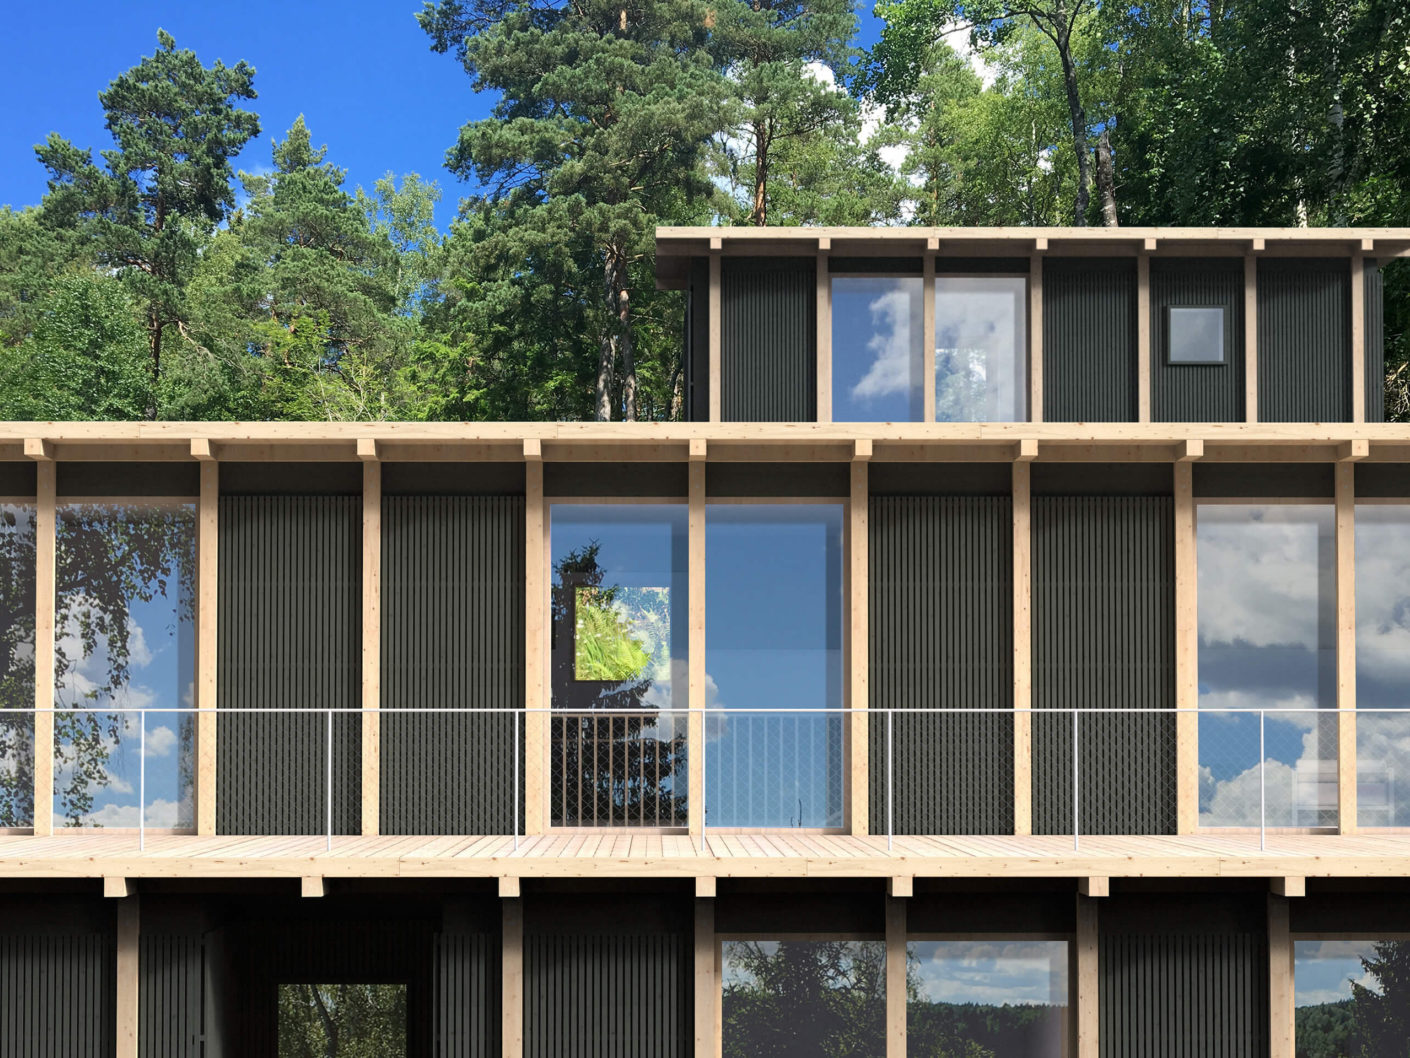 Clearly structured: the façade of the building is grid-shaped with wooden elements.